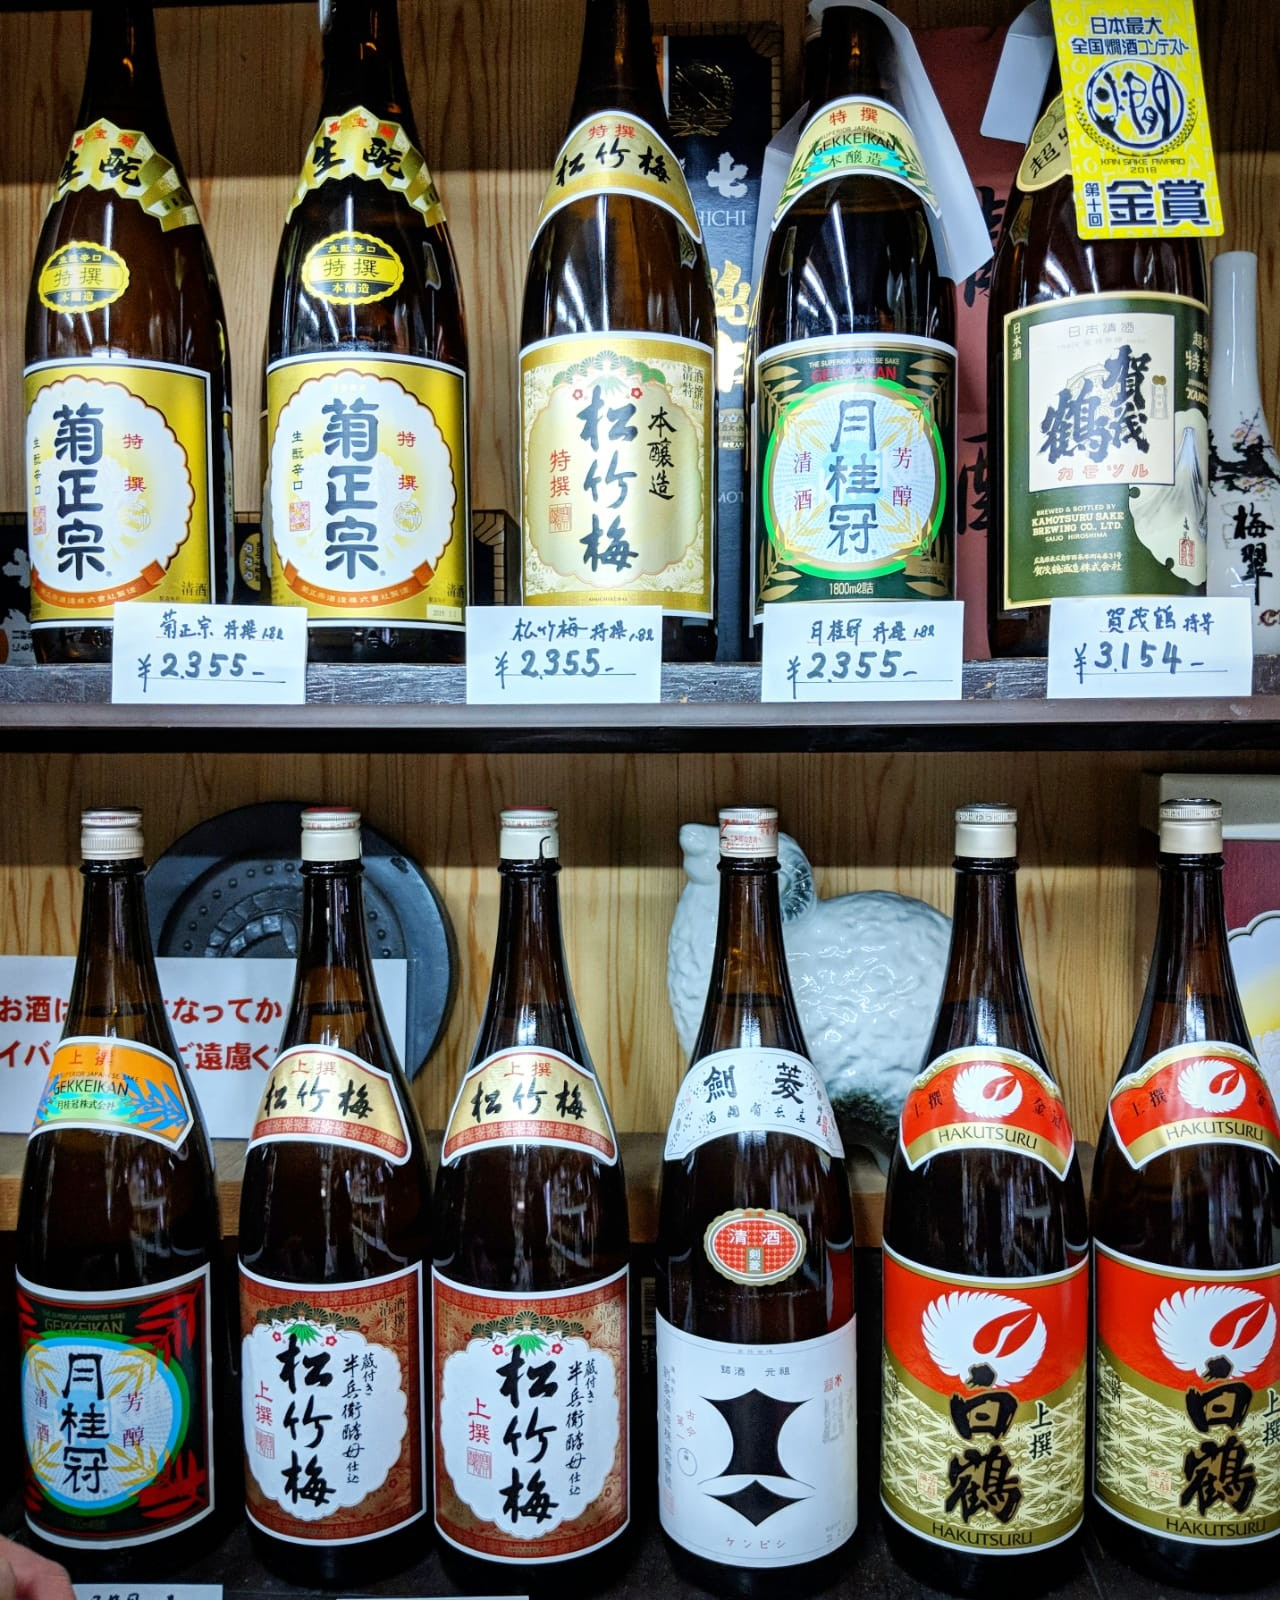 Shelves lined with bottles of Japanese rice wine